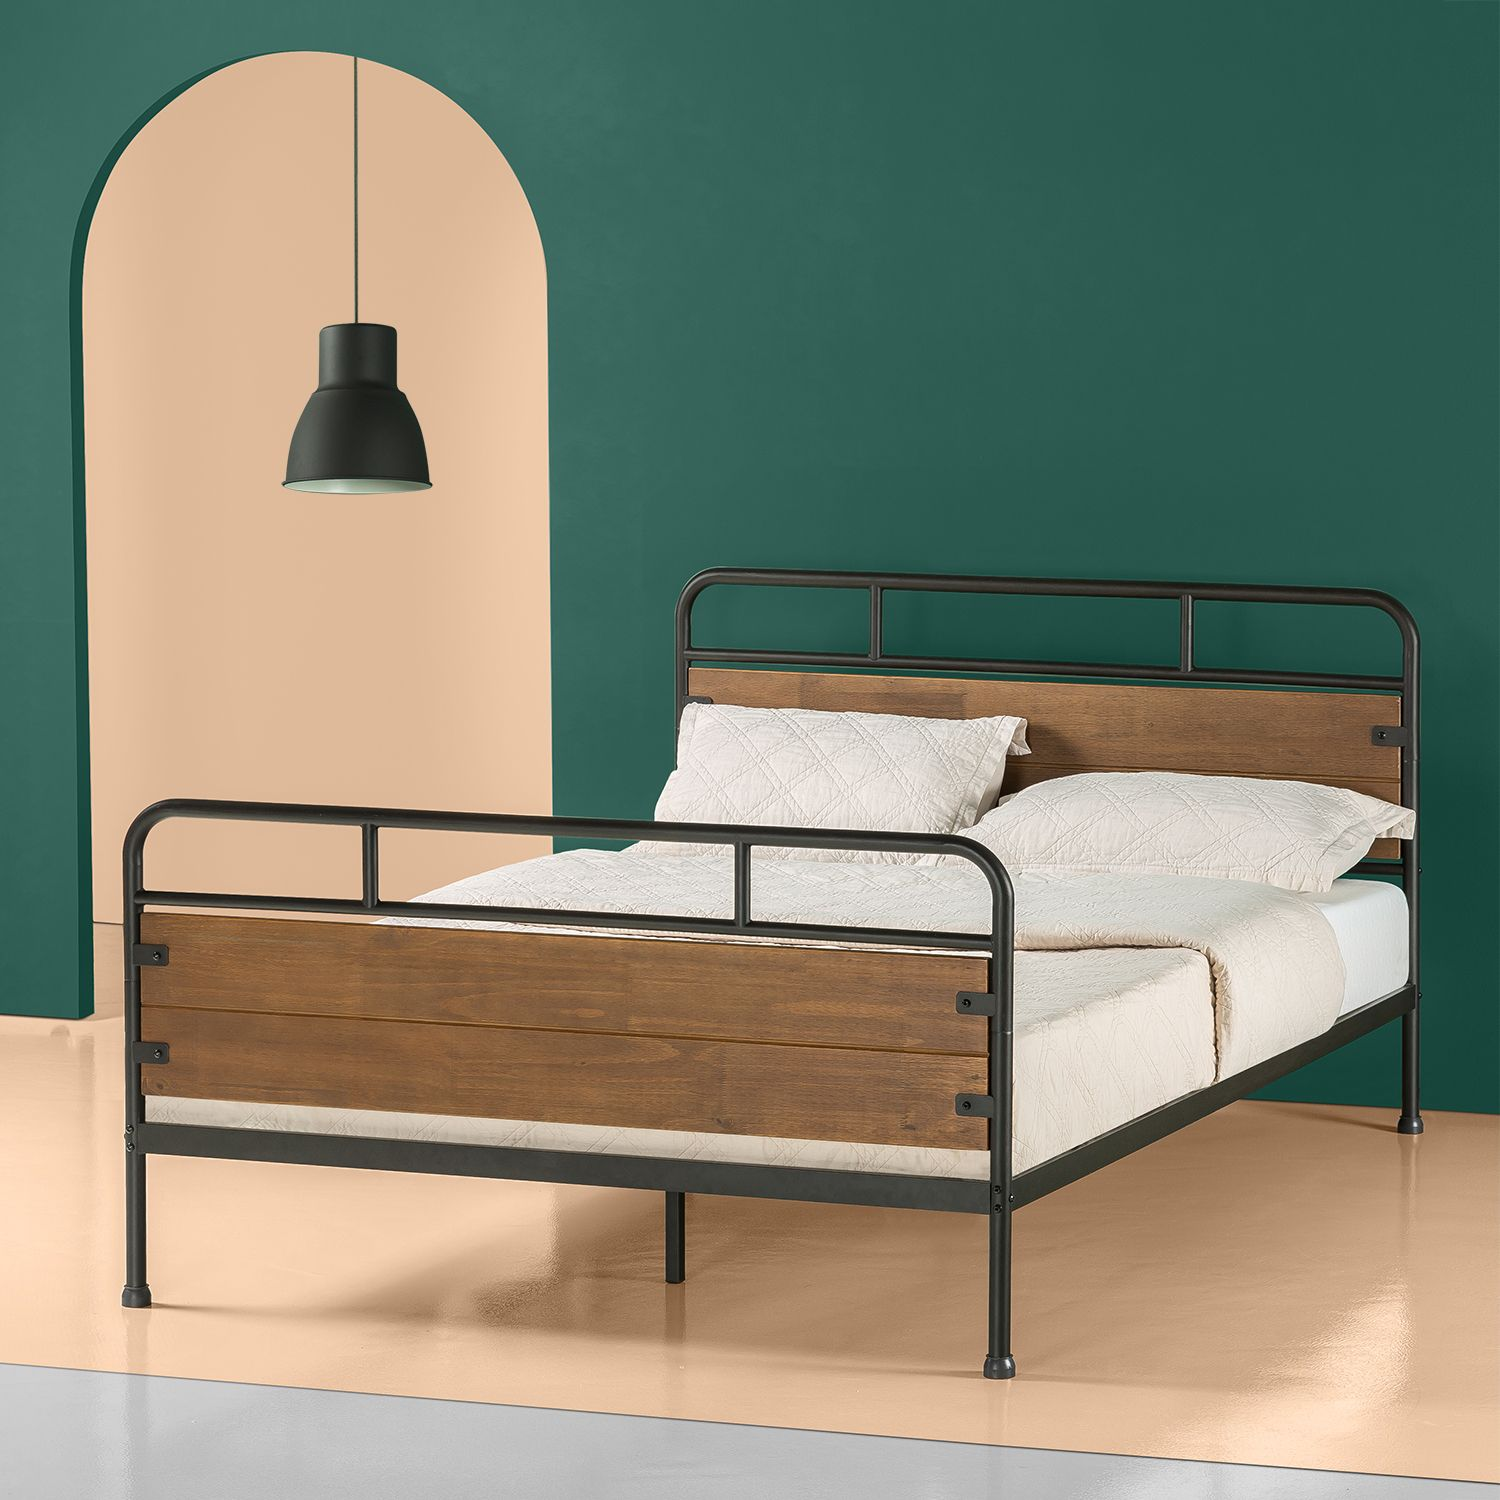 Home Wood Platform Bed Platform Bed Frame Bed Frame With Storage